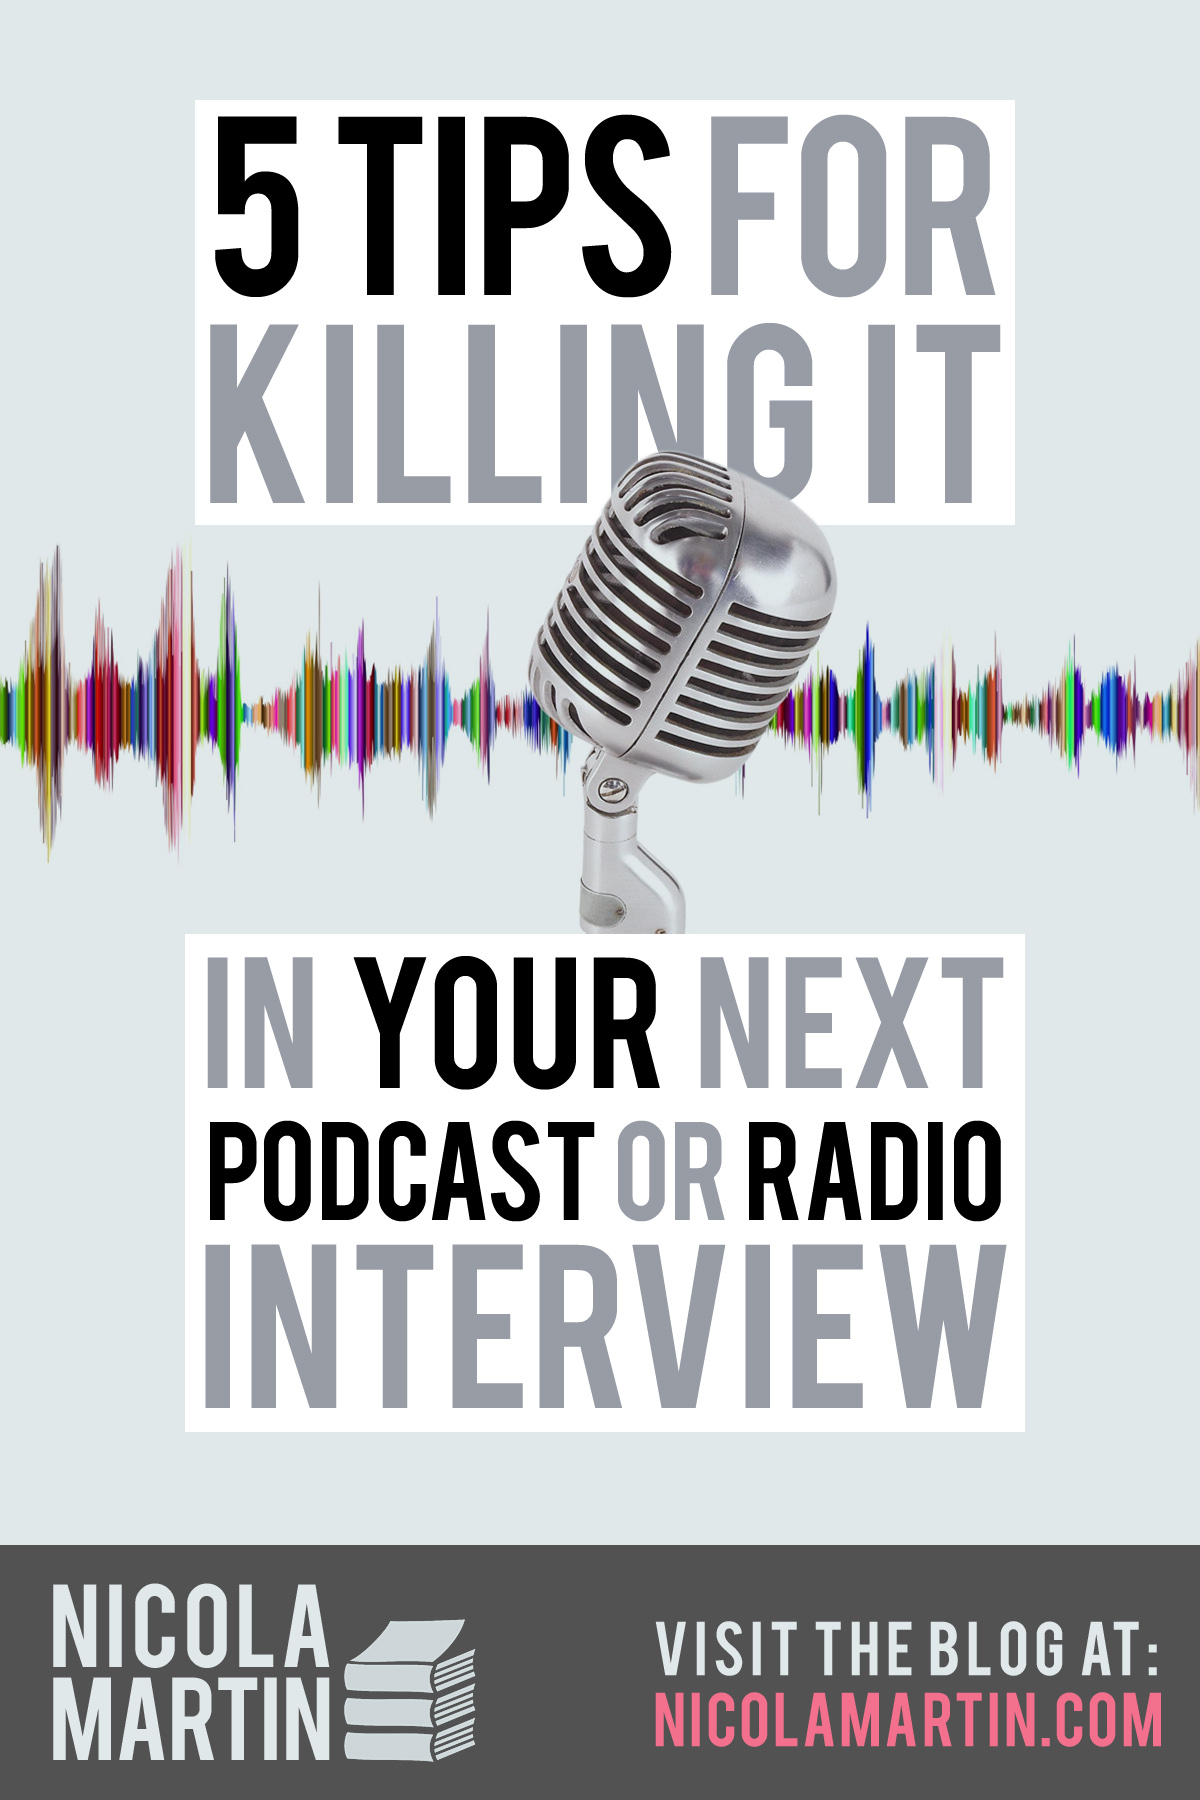 Tips for killing it in your next podcast or radio interview